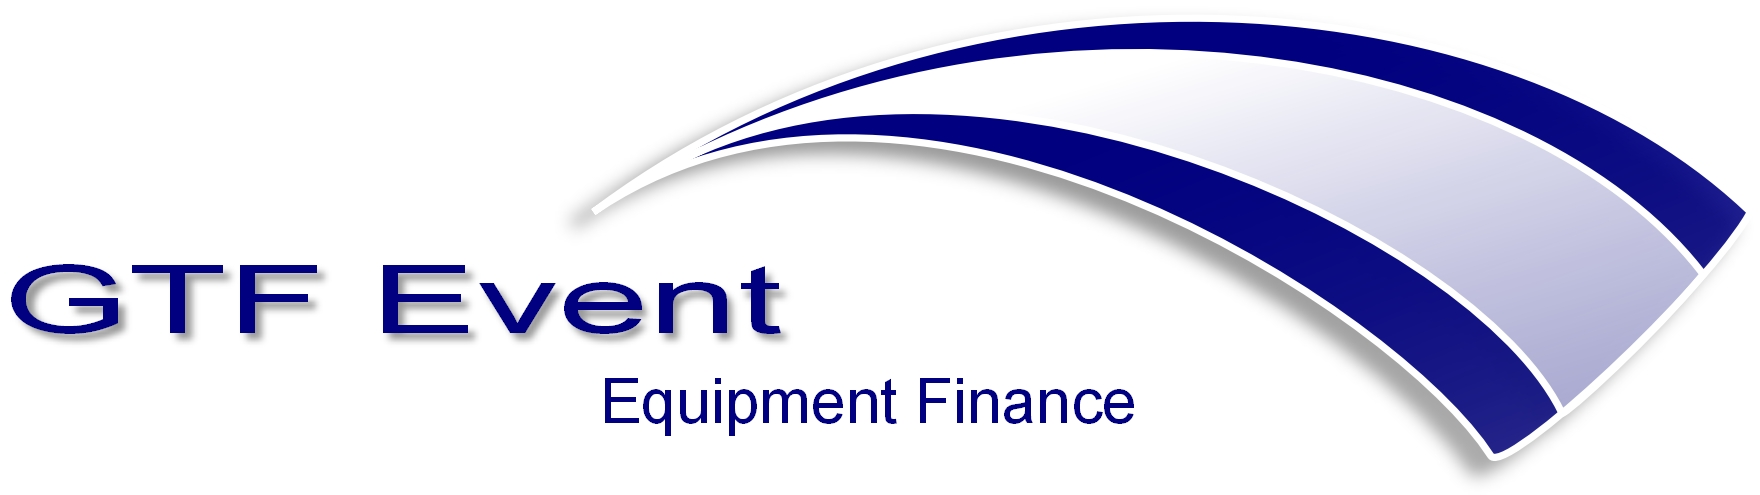 GTF Event Equipment Finance